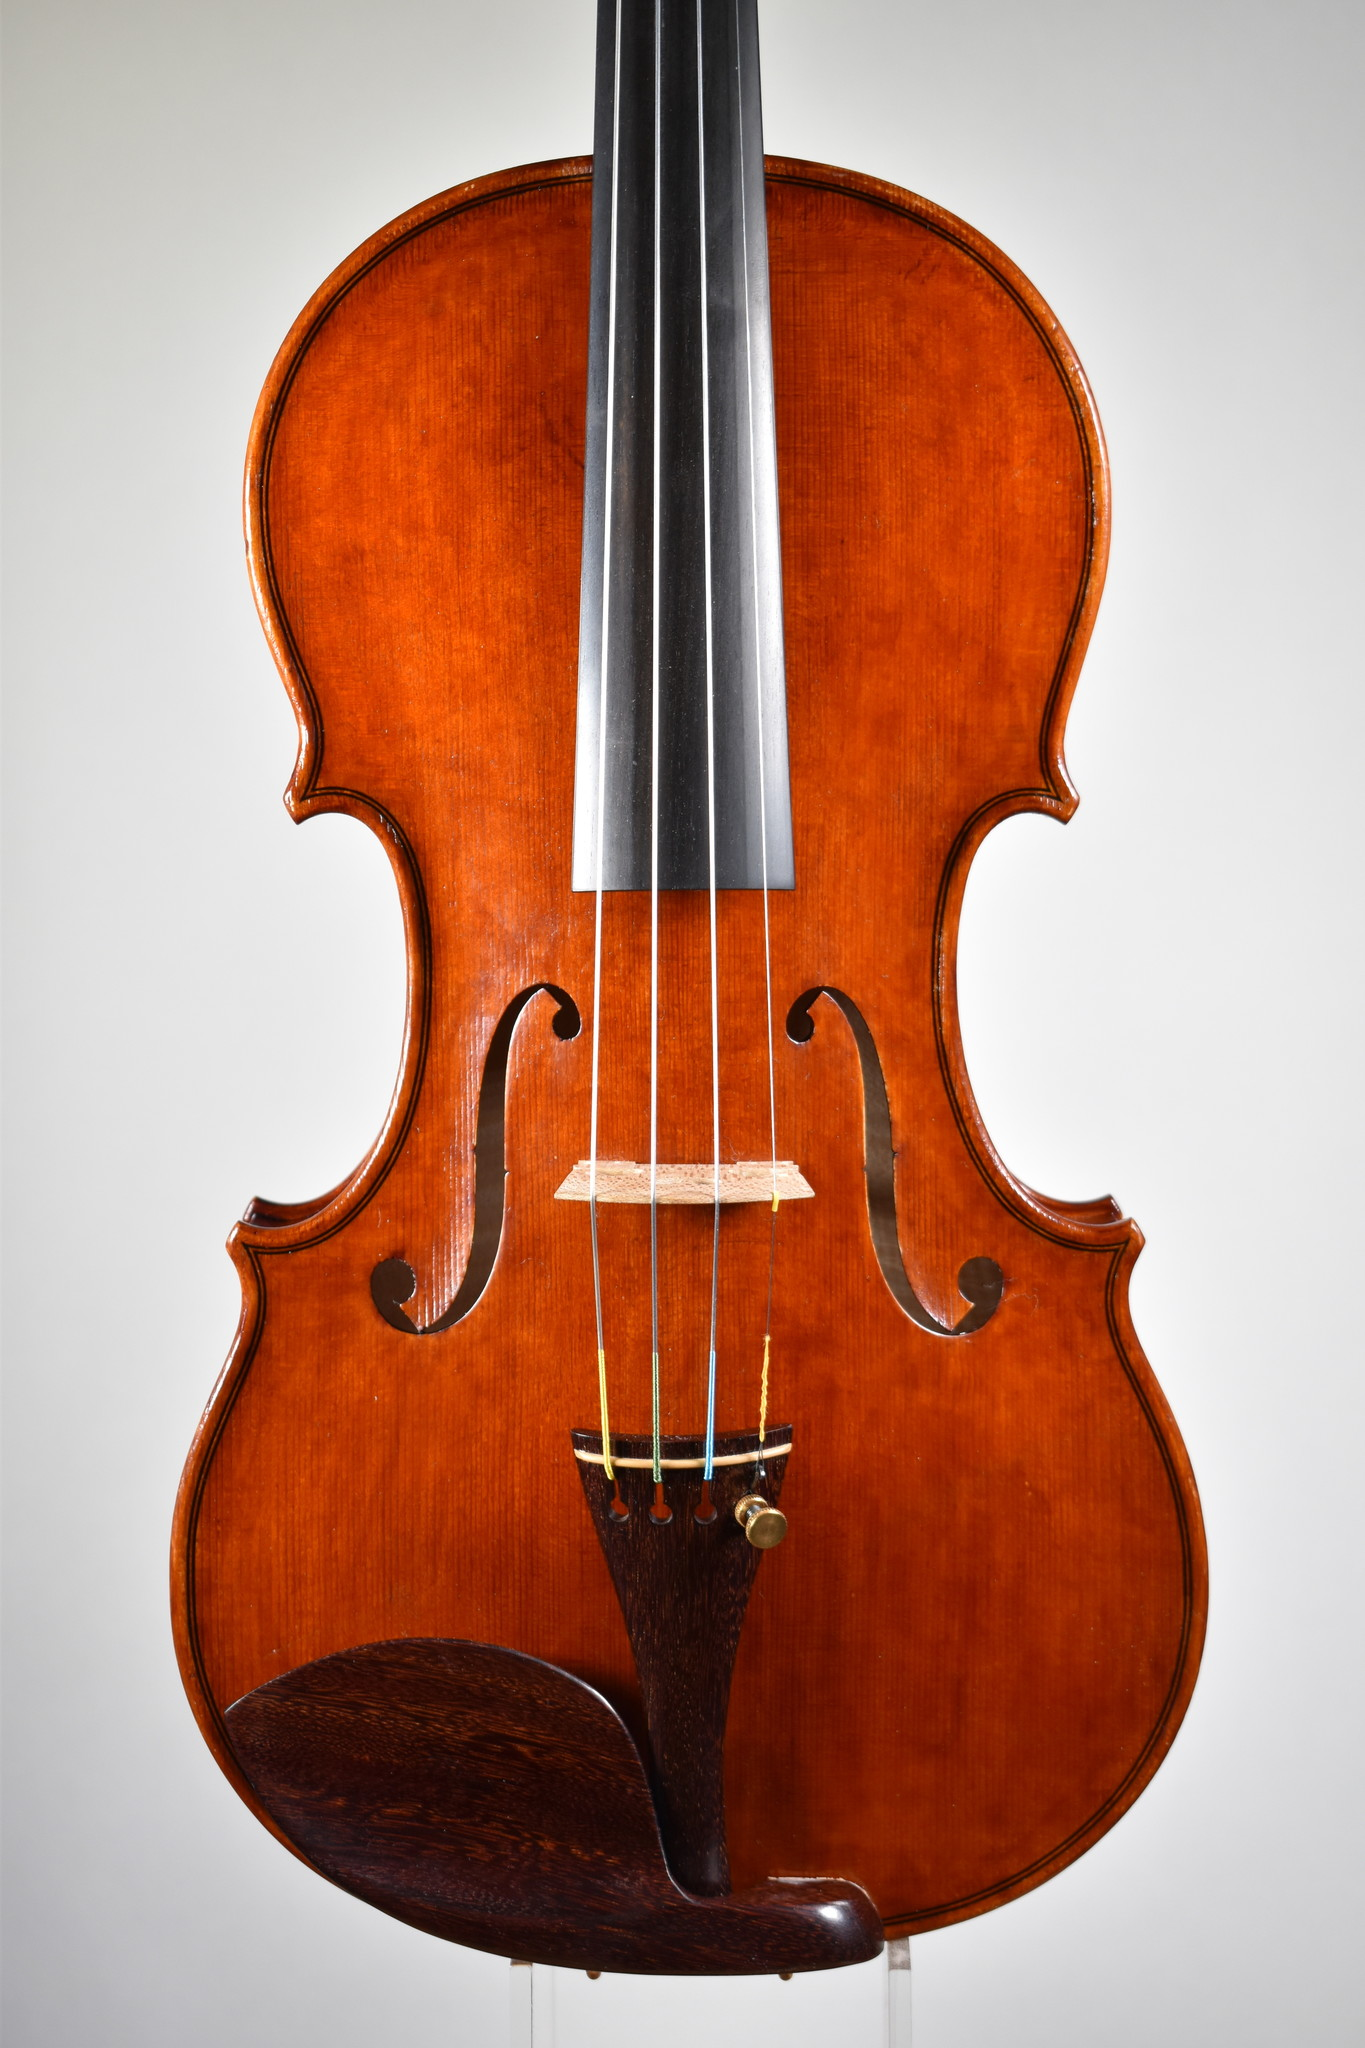 Robert Spetz violin, 1690 Stradivari Tuscan model, Salt Lake City, UT, 2020